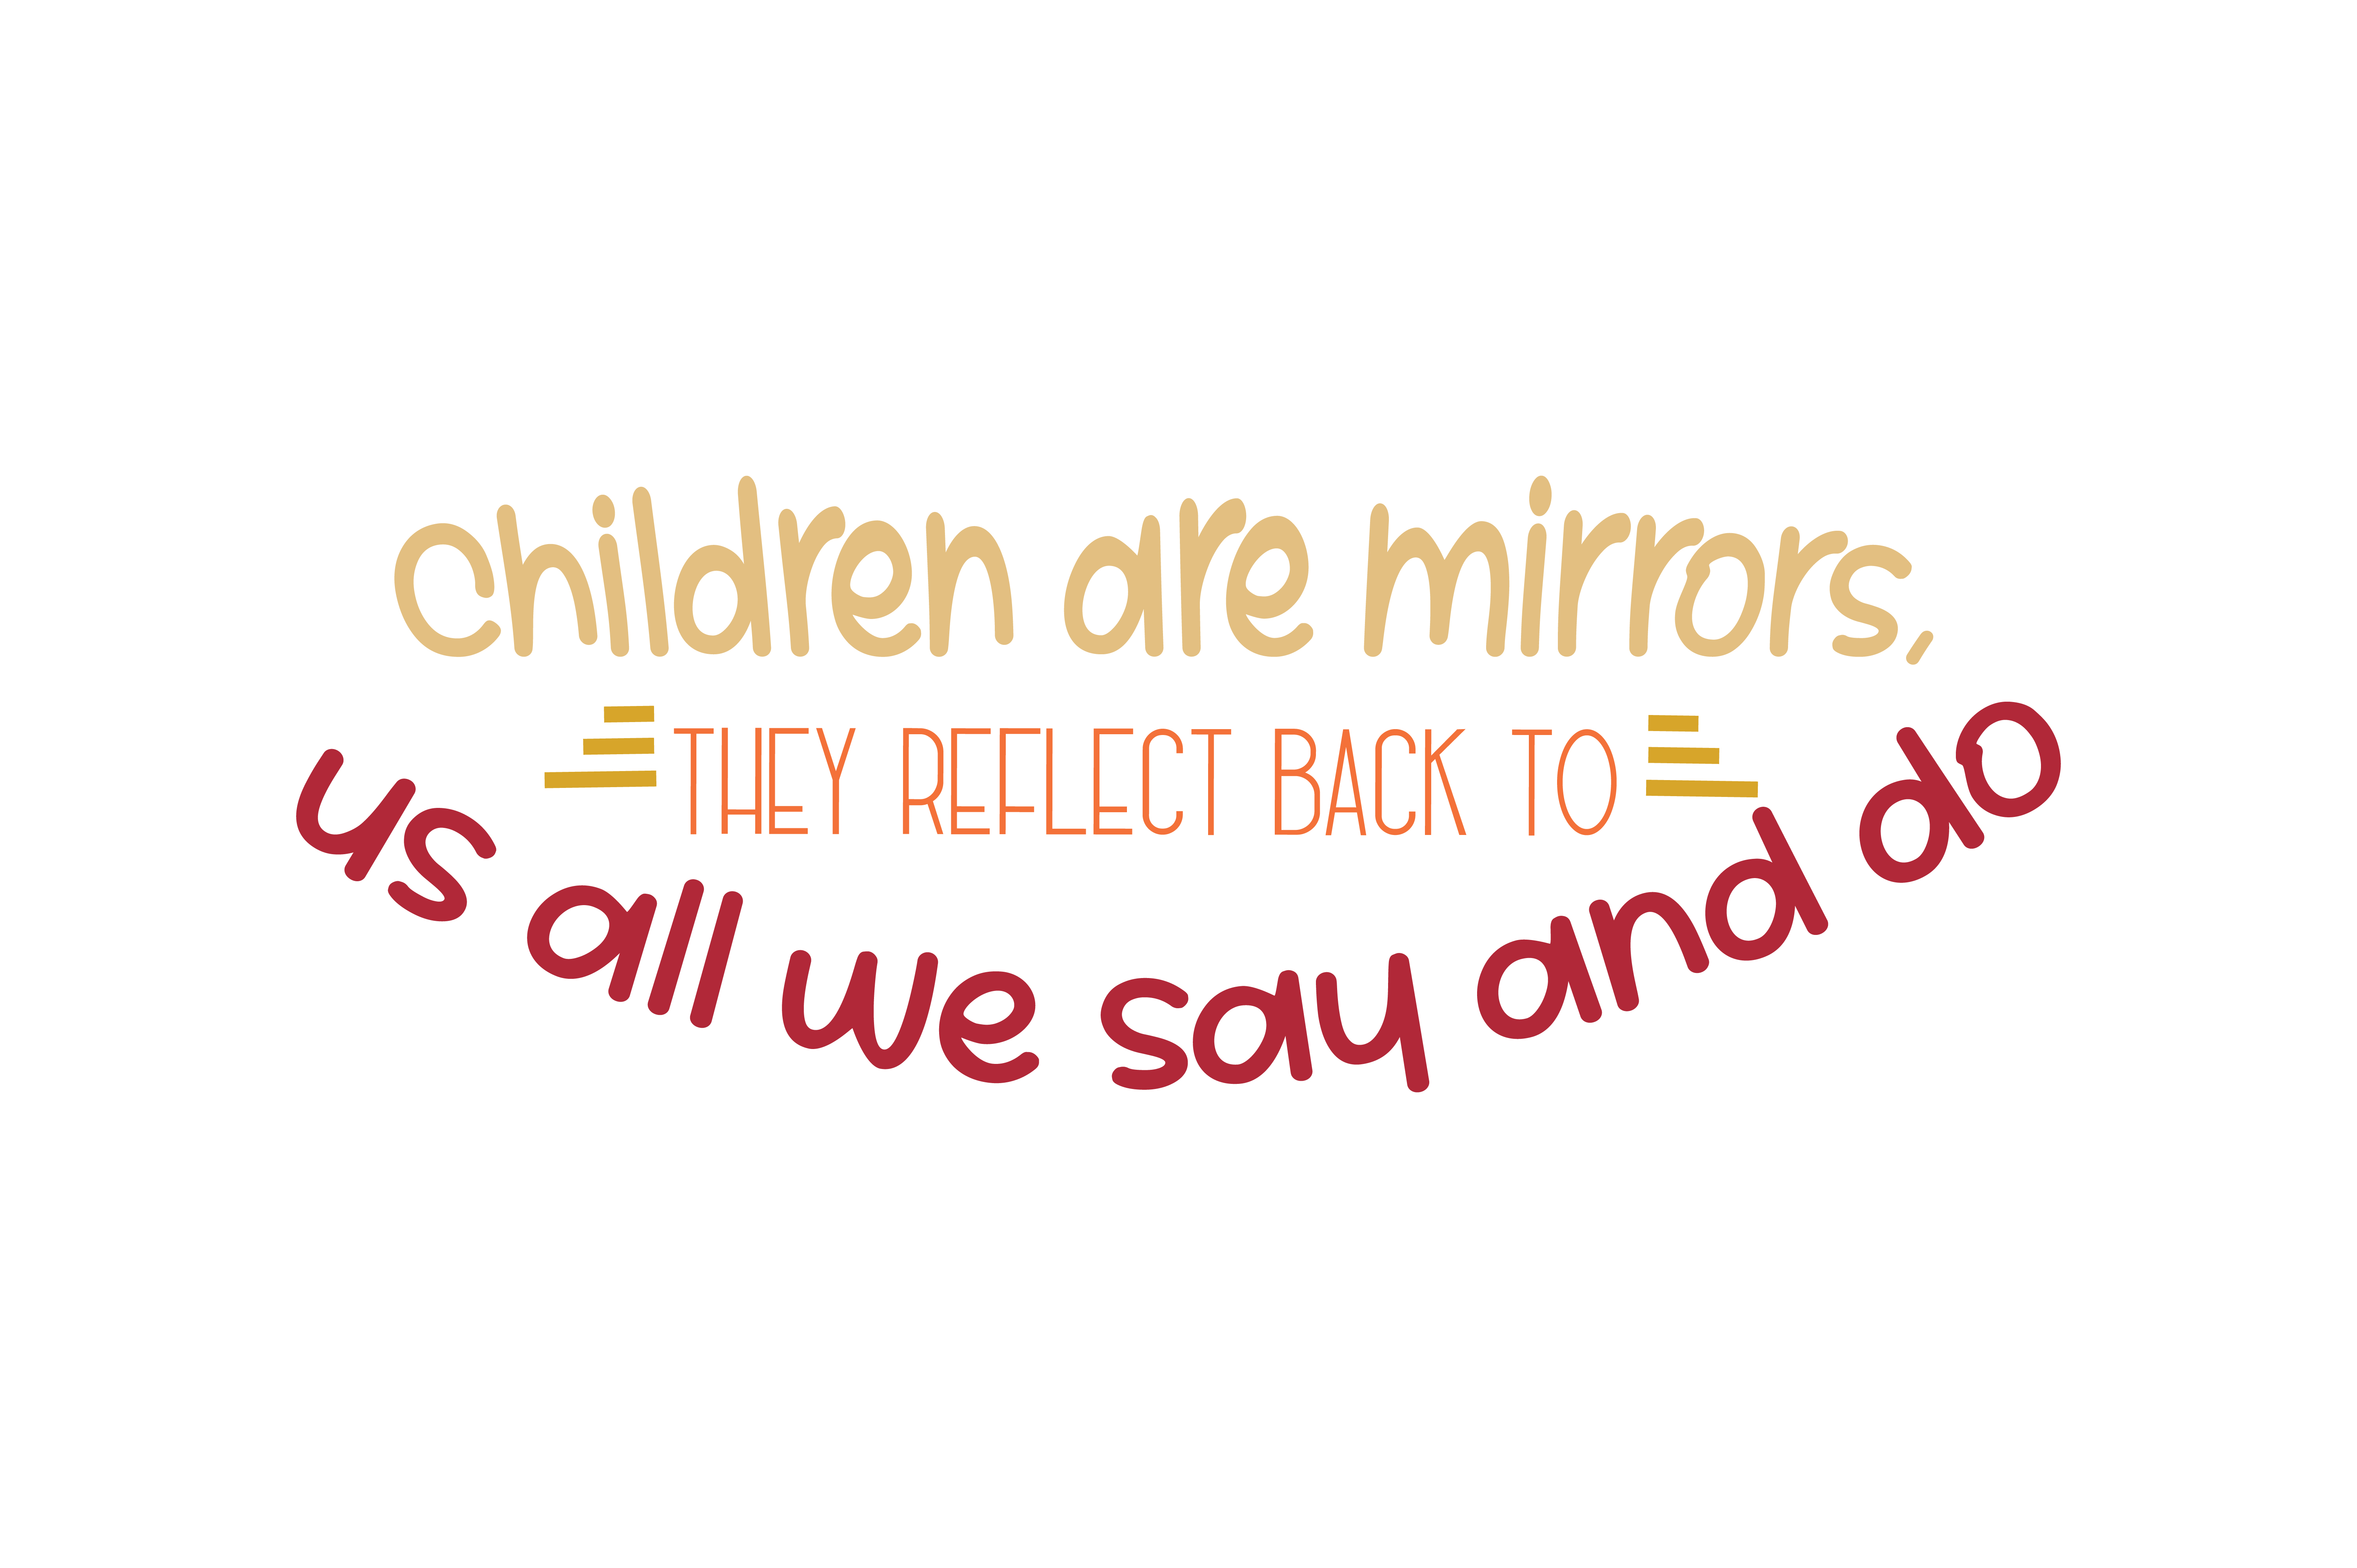 Download Free Children Are Mirrors They Reflect Back To Us All We Say And Do for Cricut Explore, Silhouette and other cutting machines.